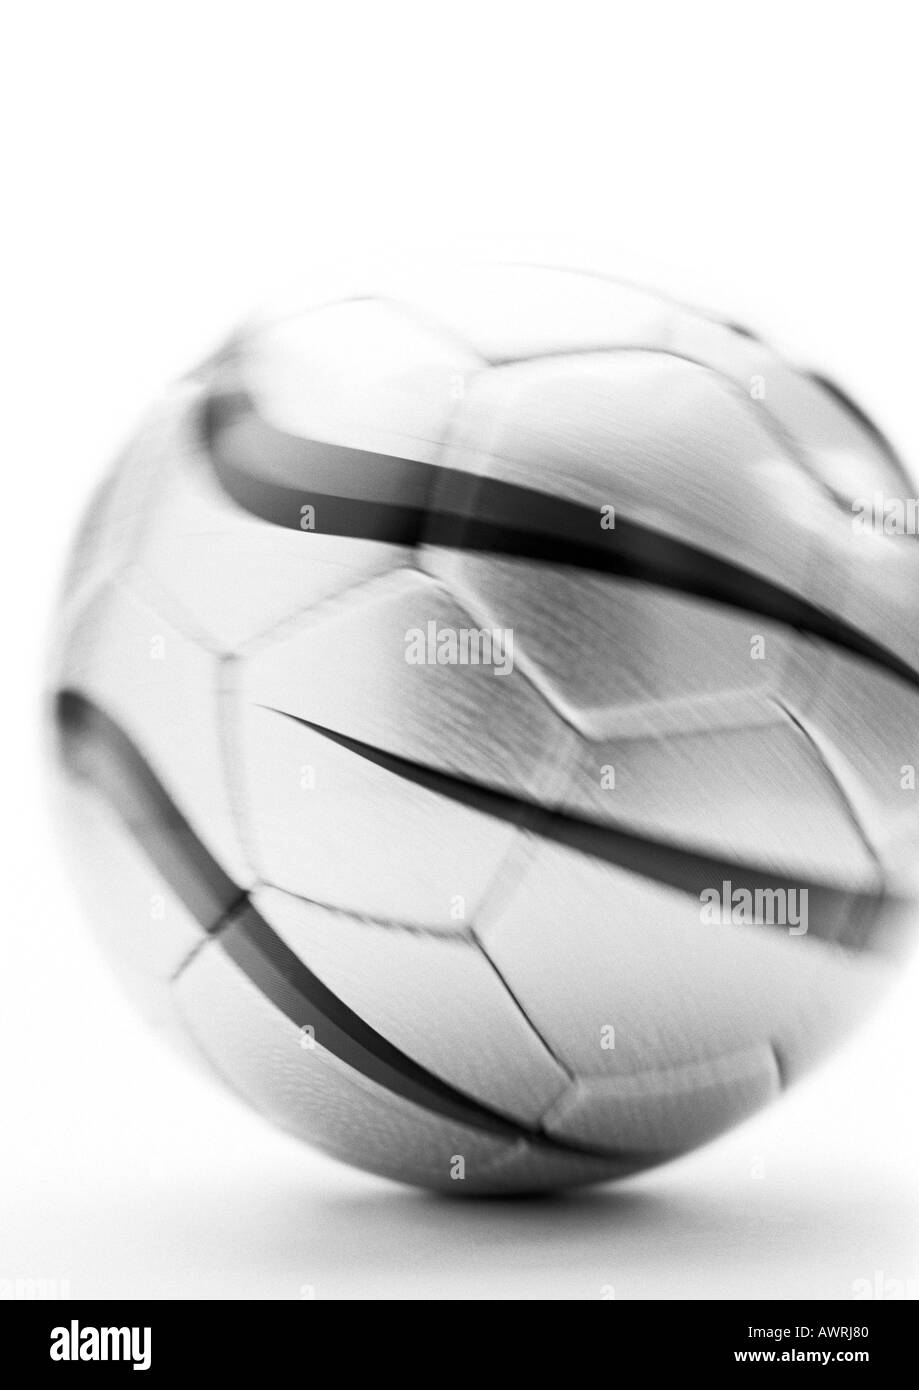 Ballon de soccer, close-up, b&w. Photo Stock